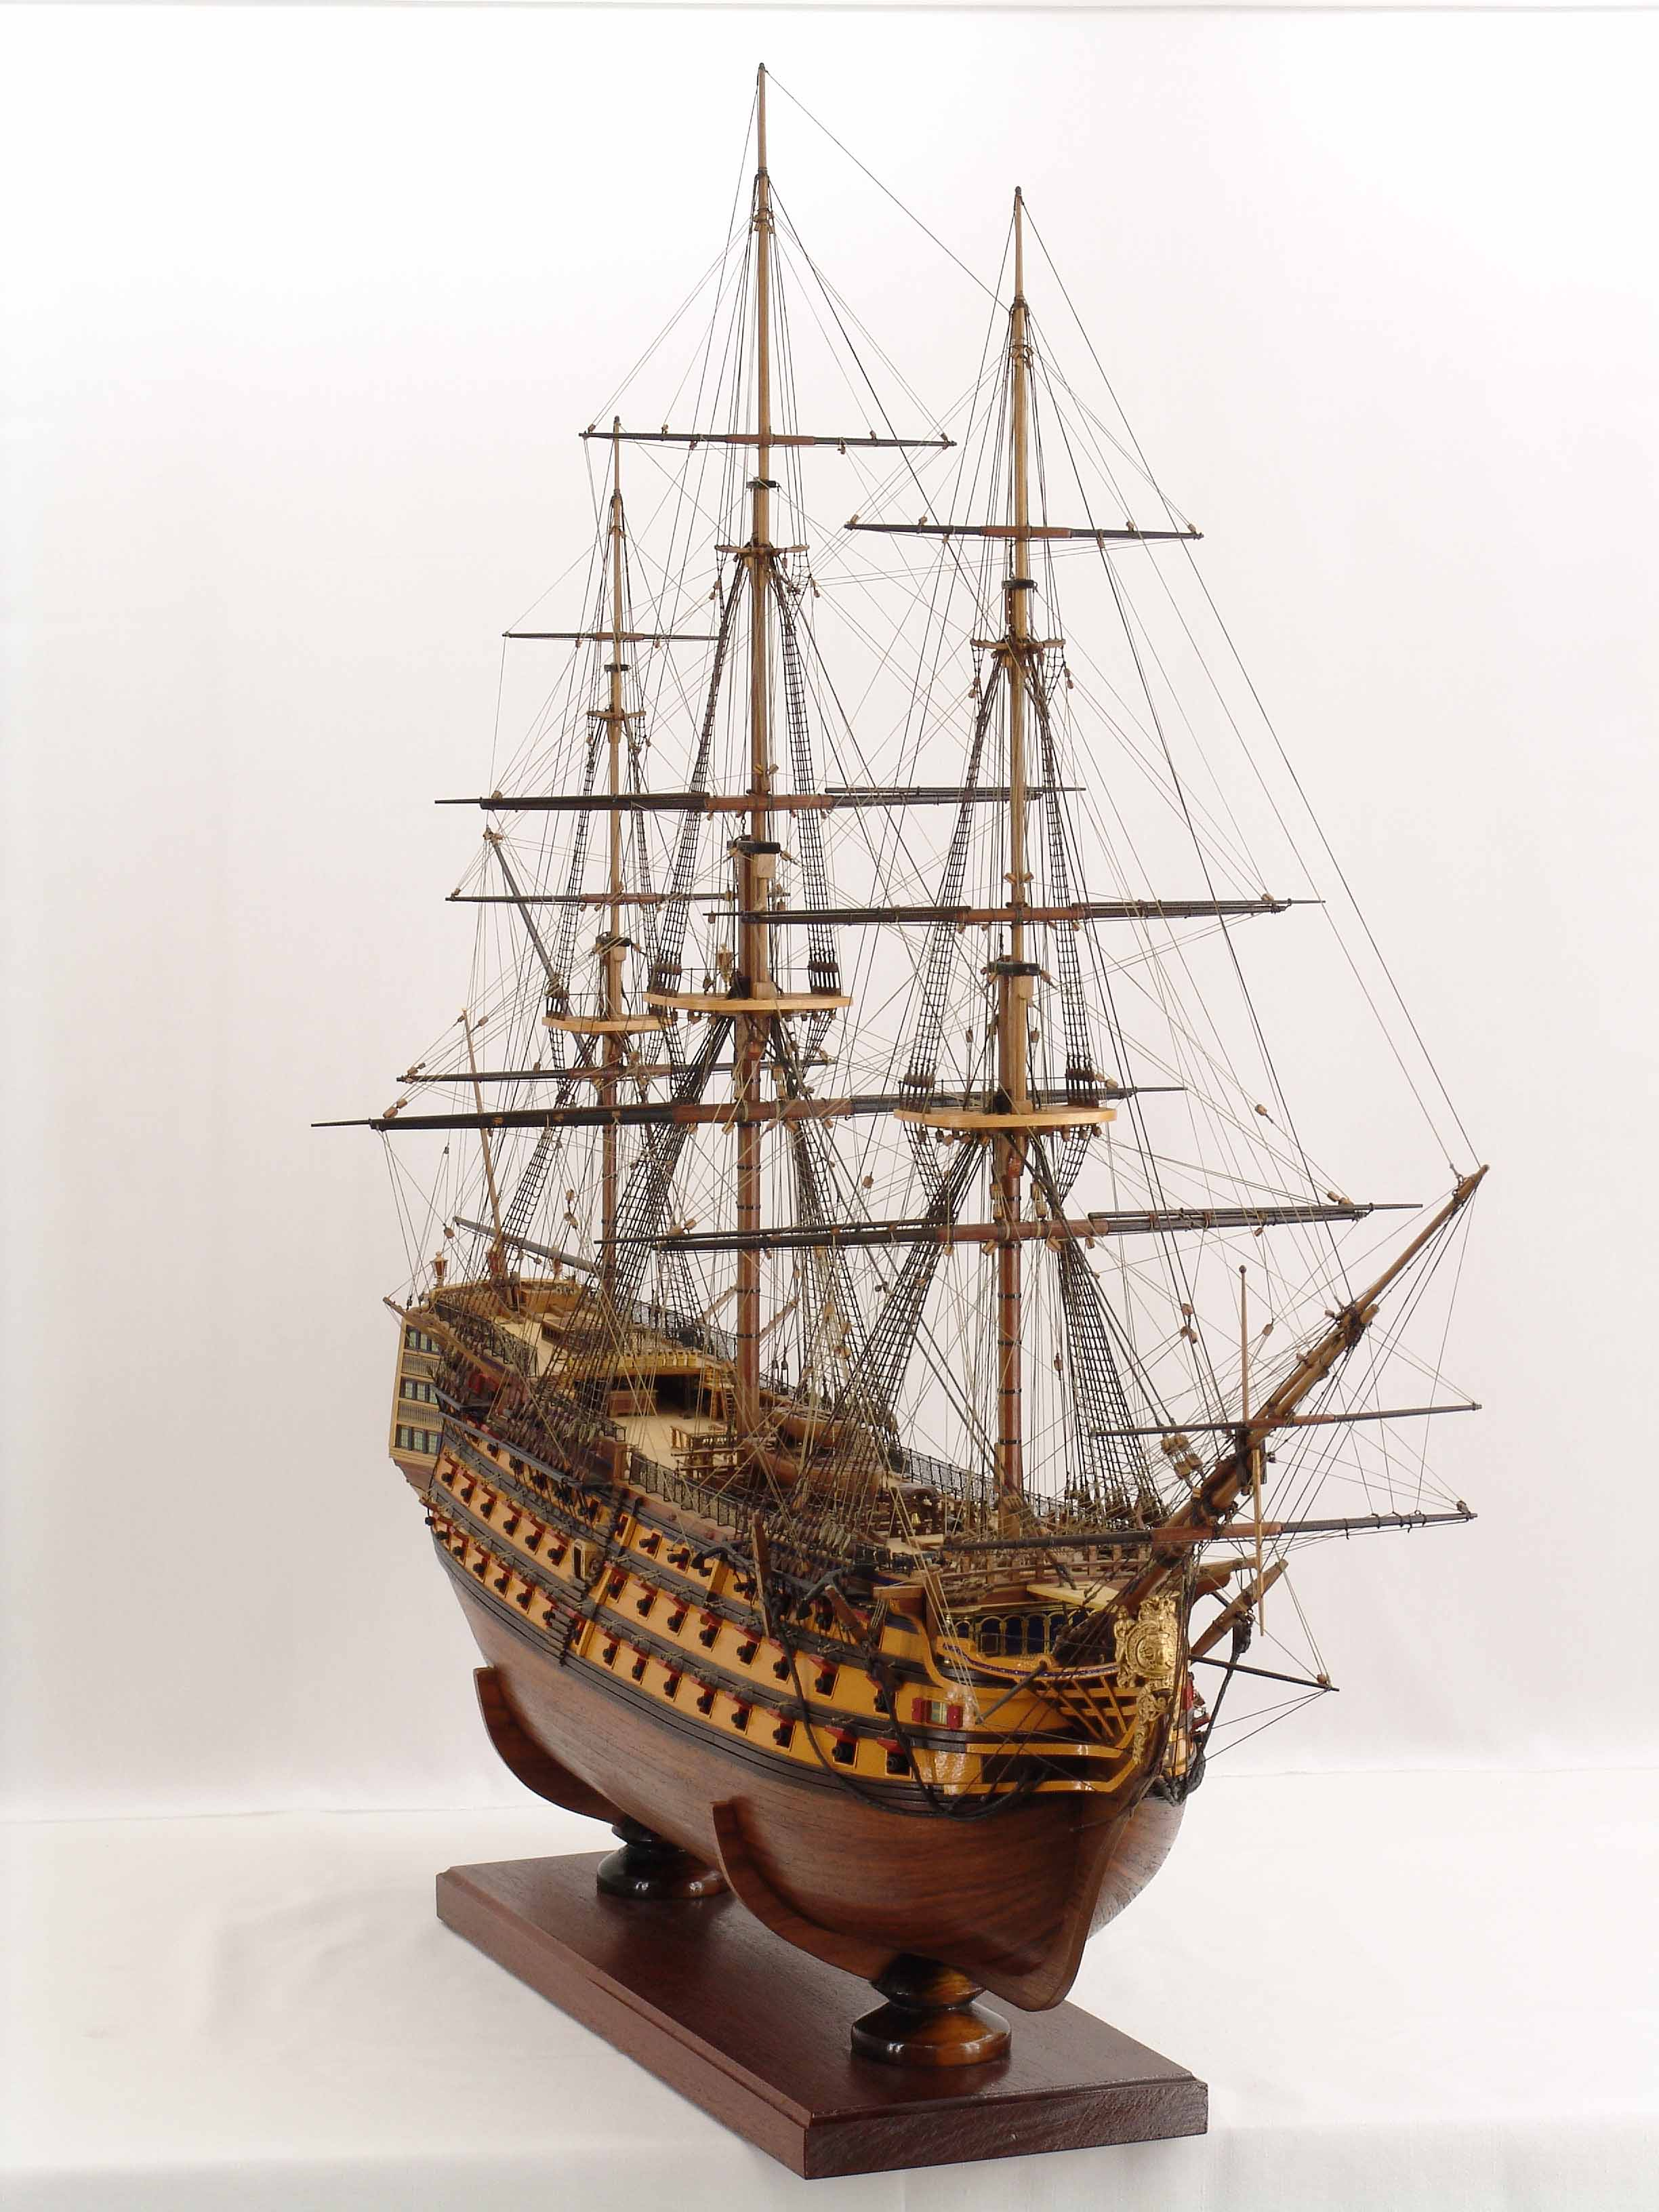 Wooden ship model assembly 2014